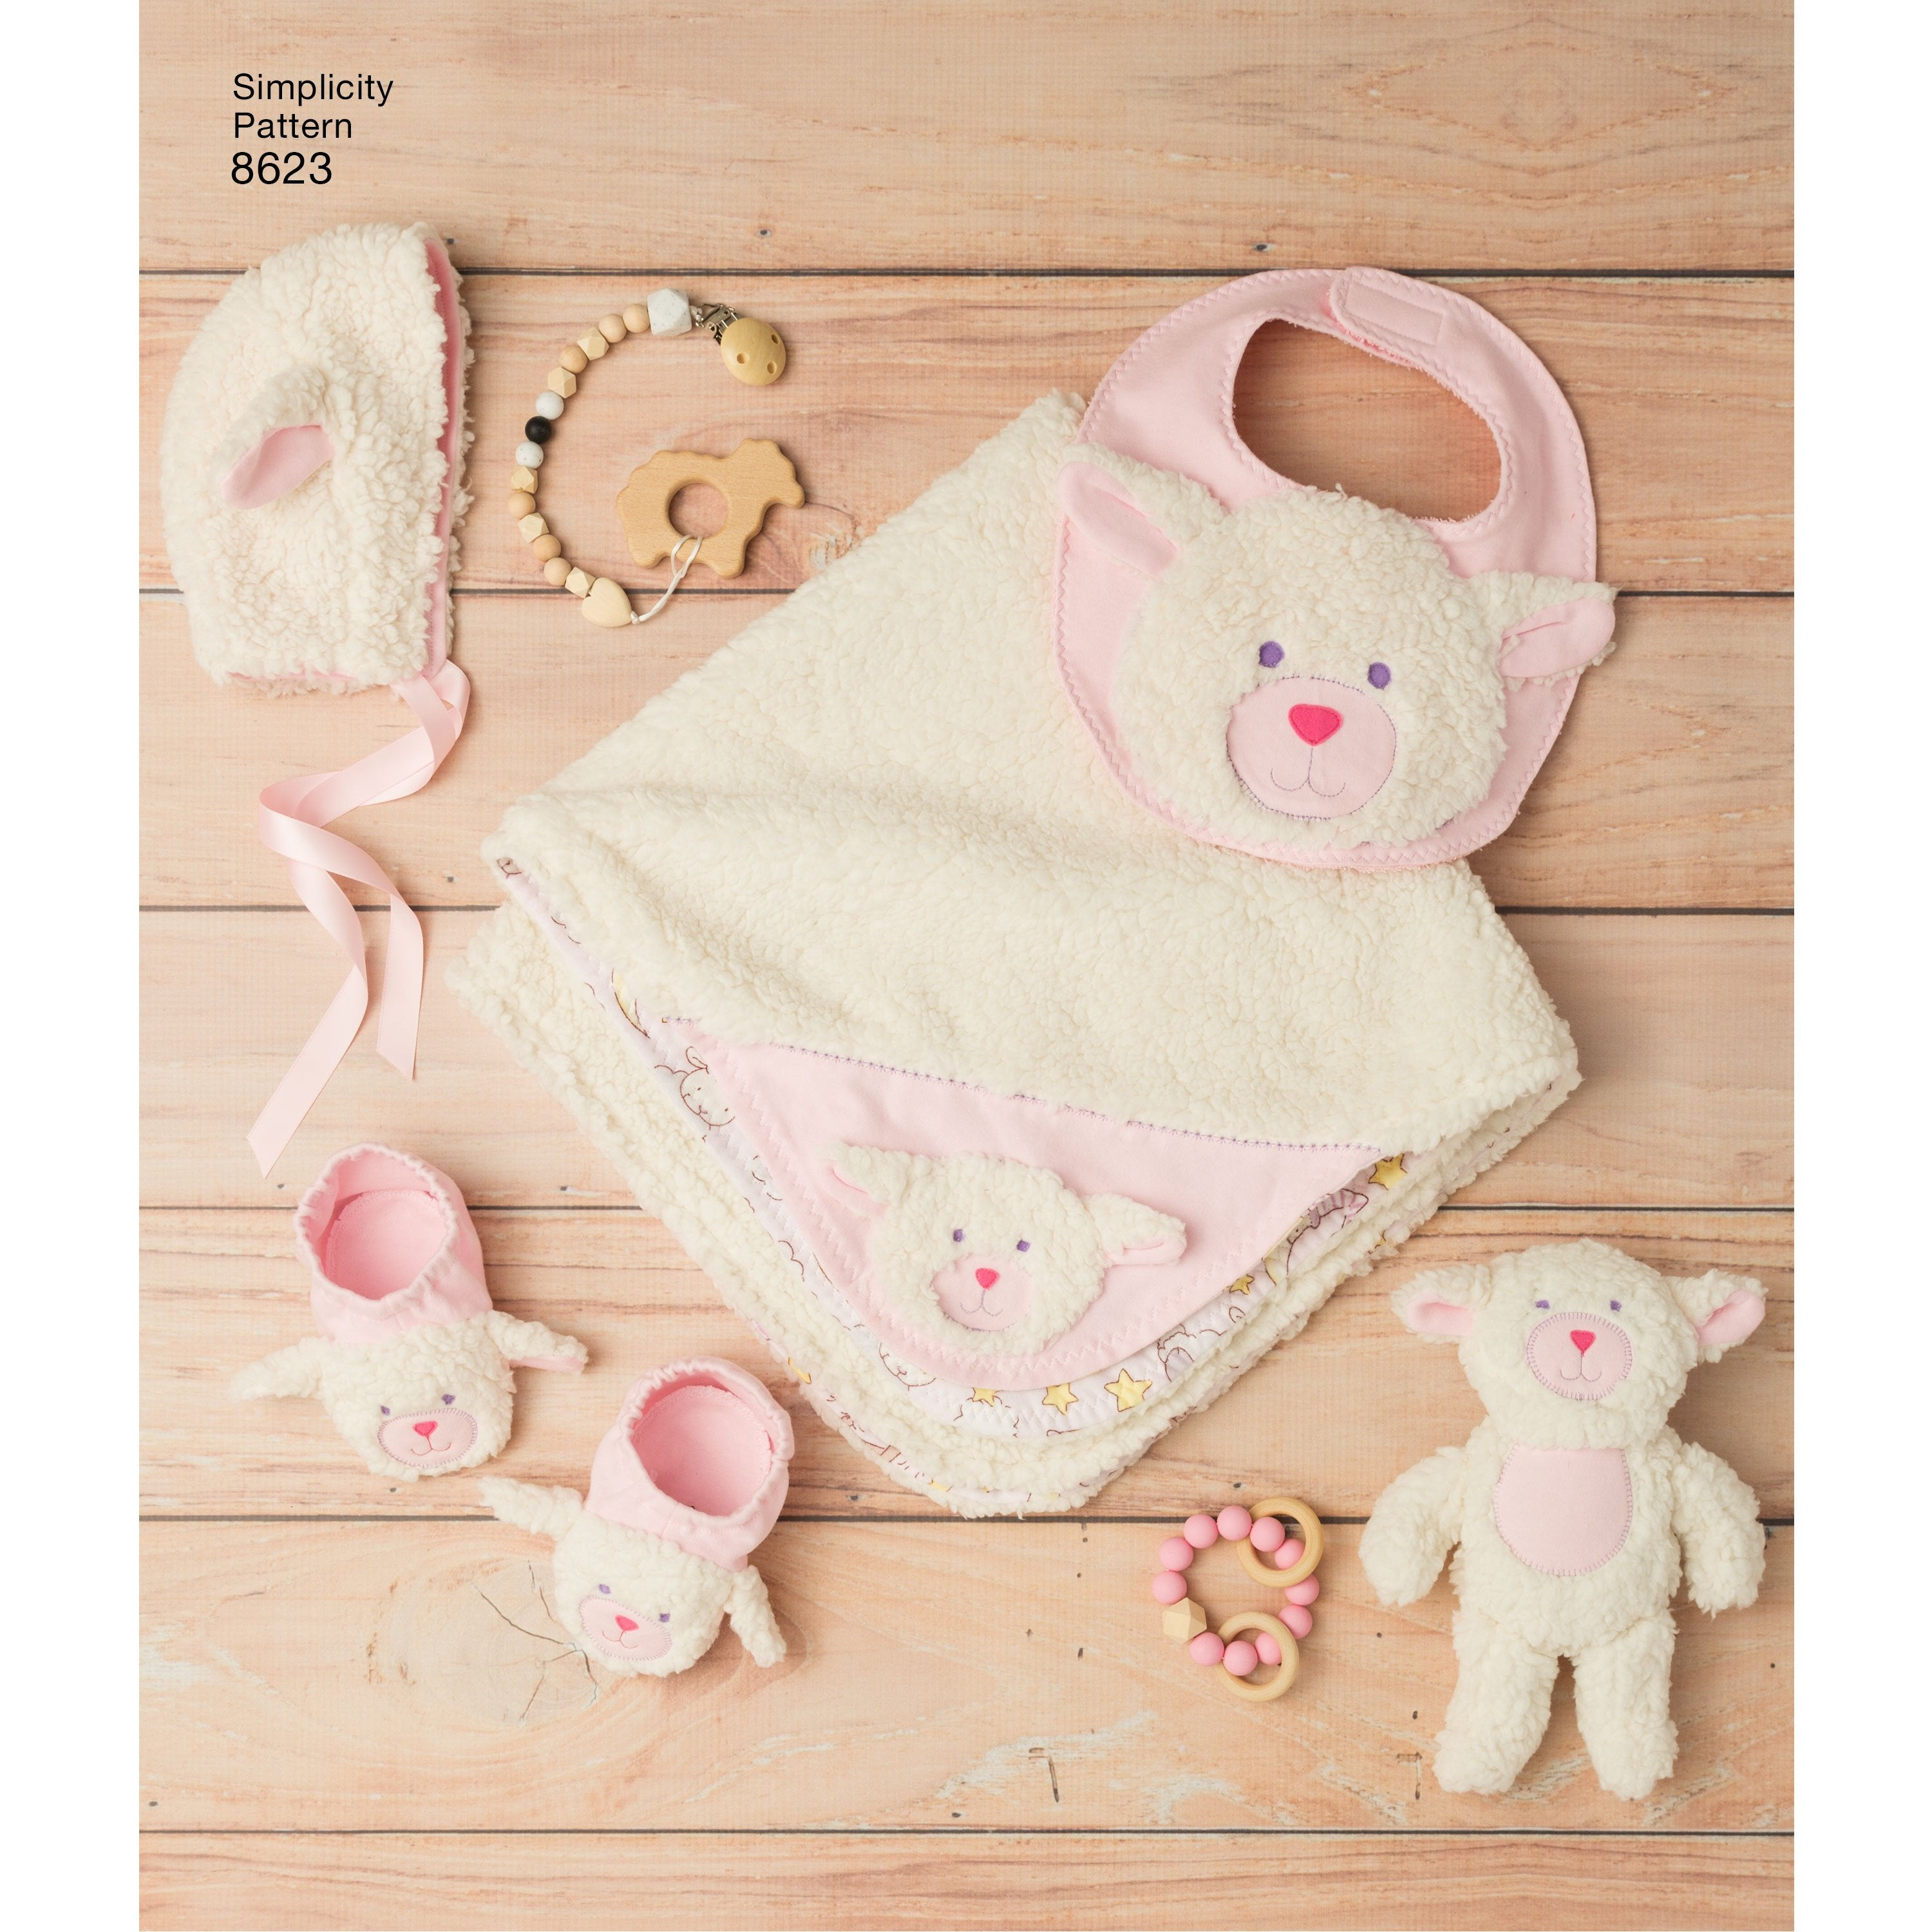 S8623 Sewing Pattern | Baby Accessories — jaycotts.co.uk - Sewing ...